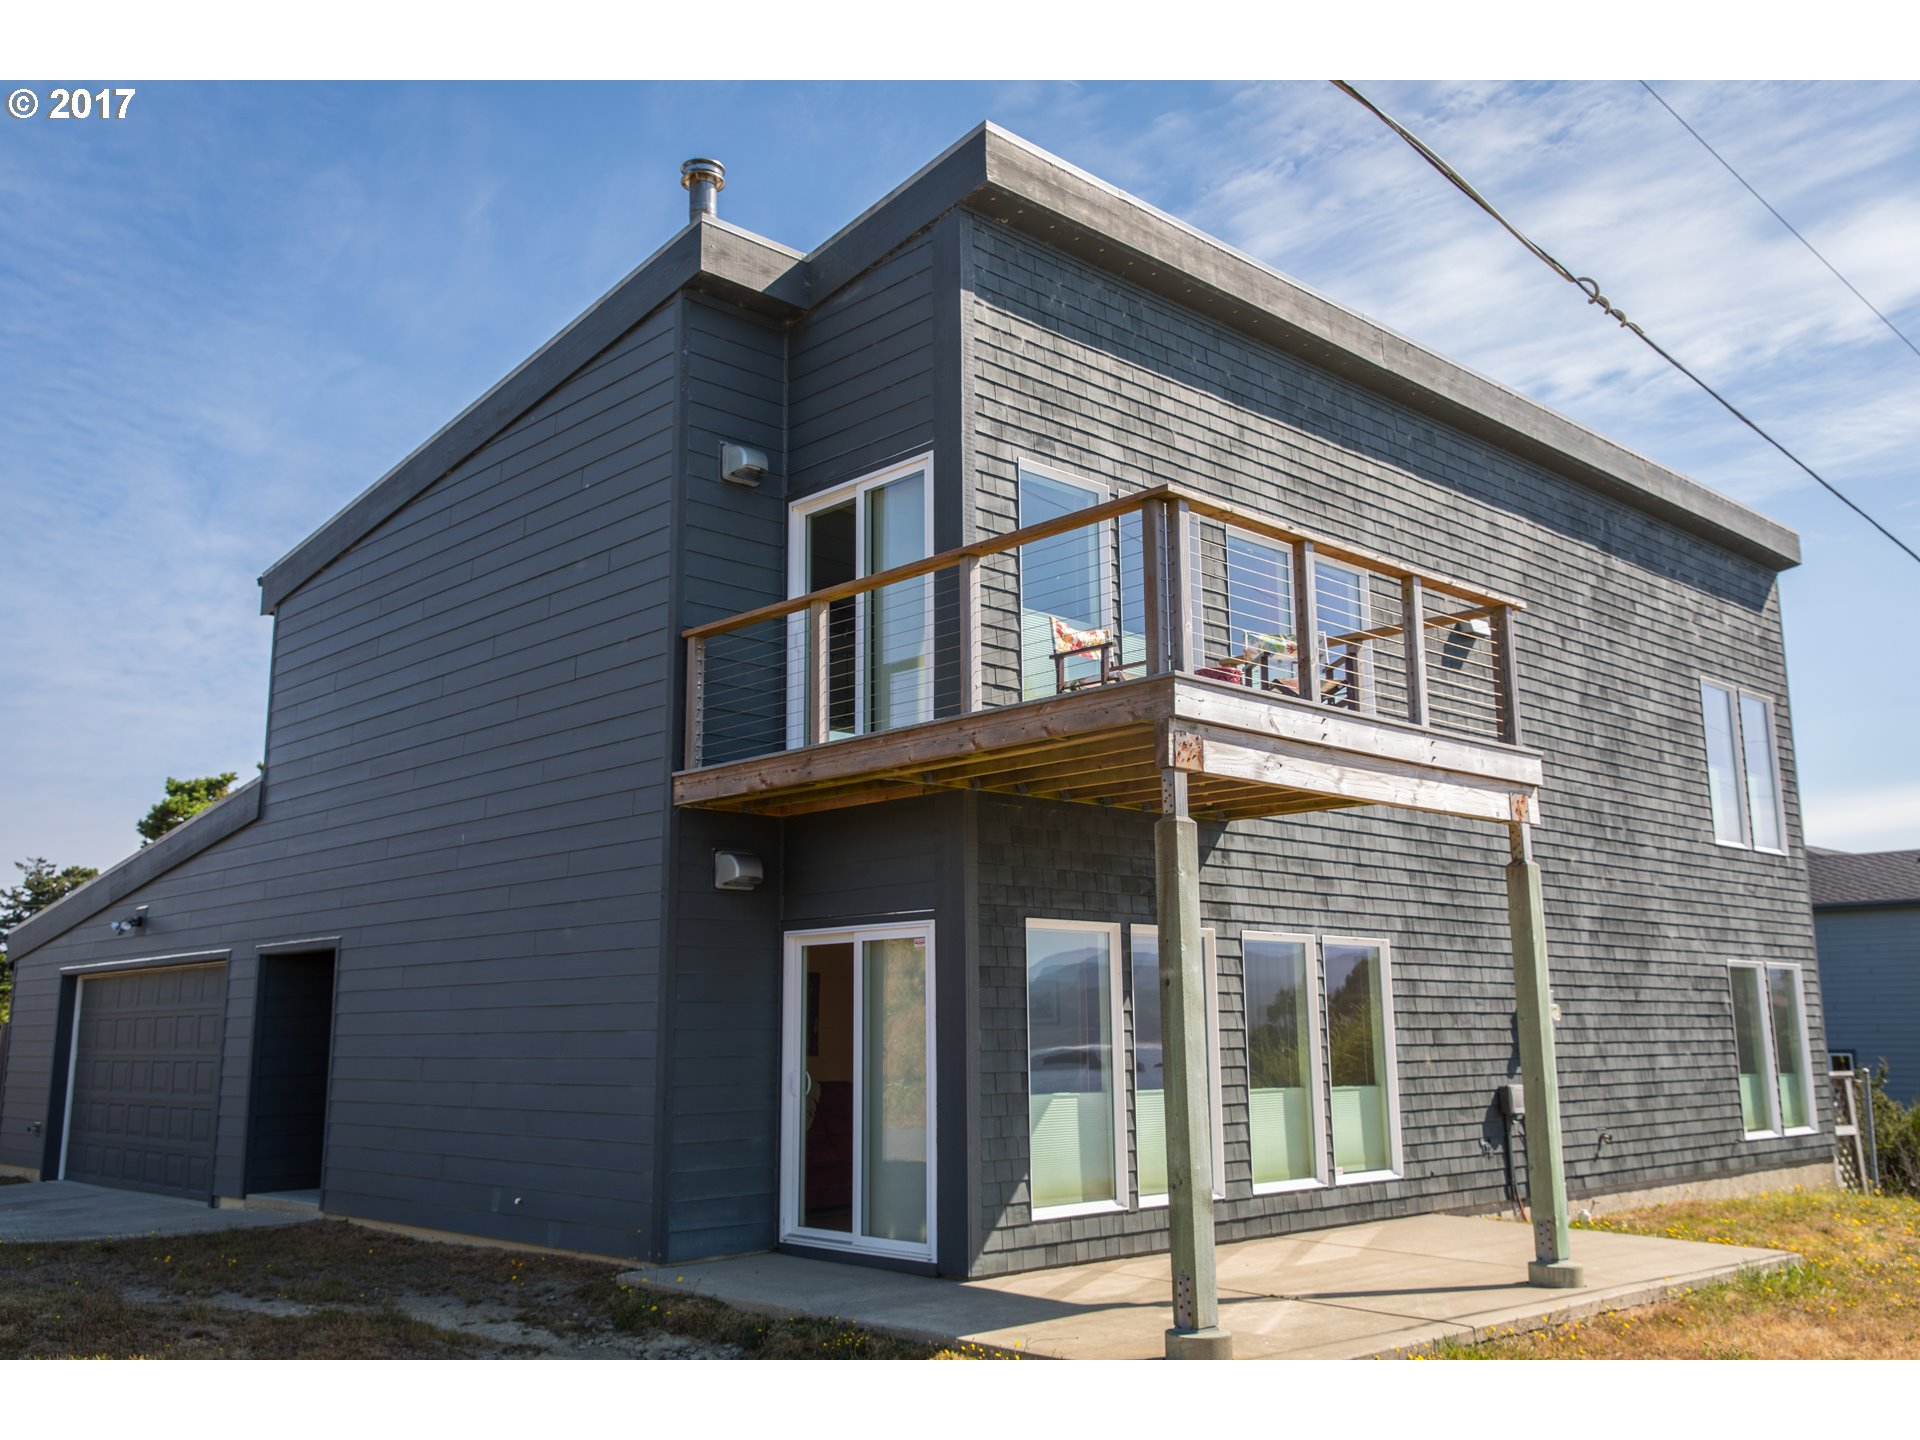 475 FIFTH ST, PORT ORFORD, OR 97465